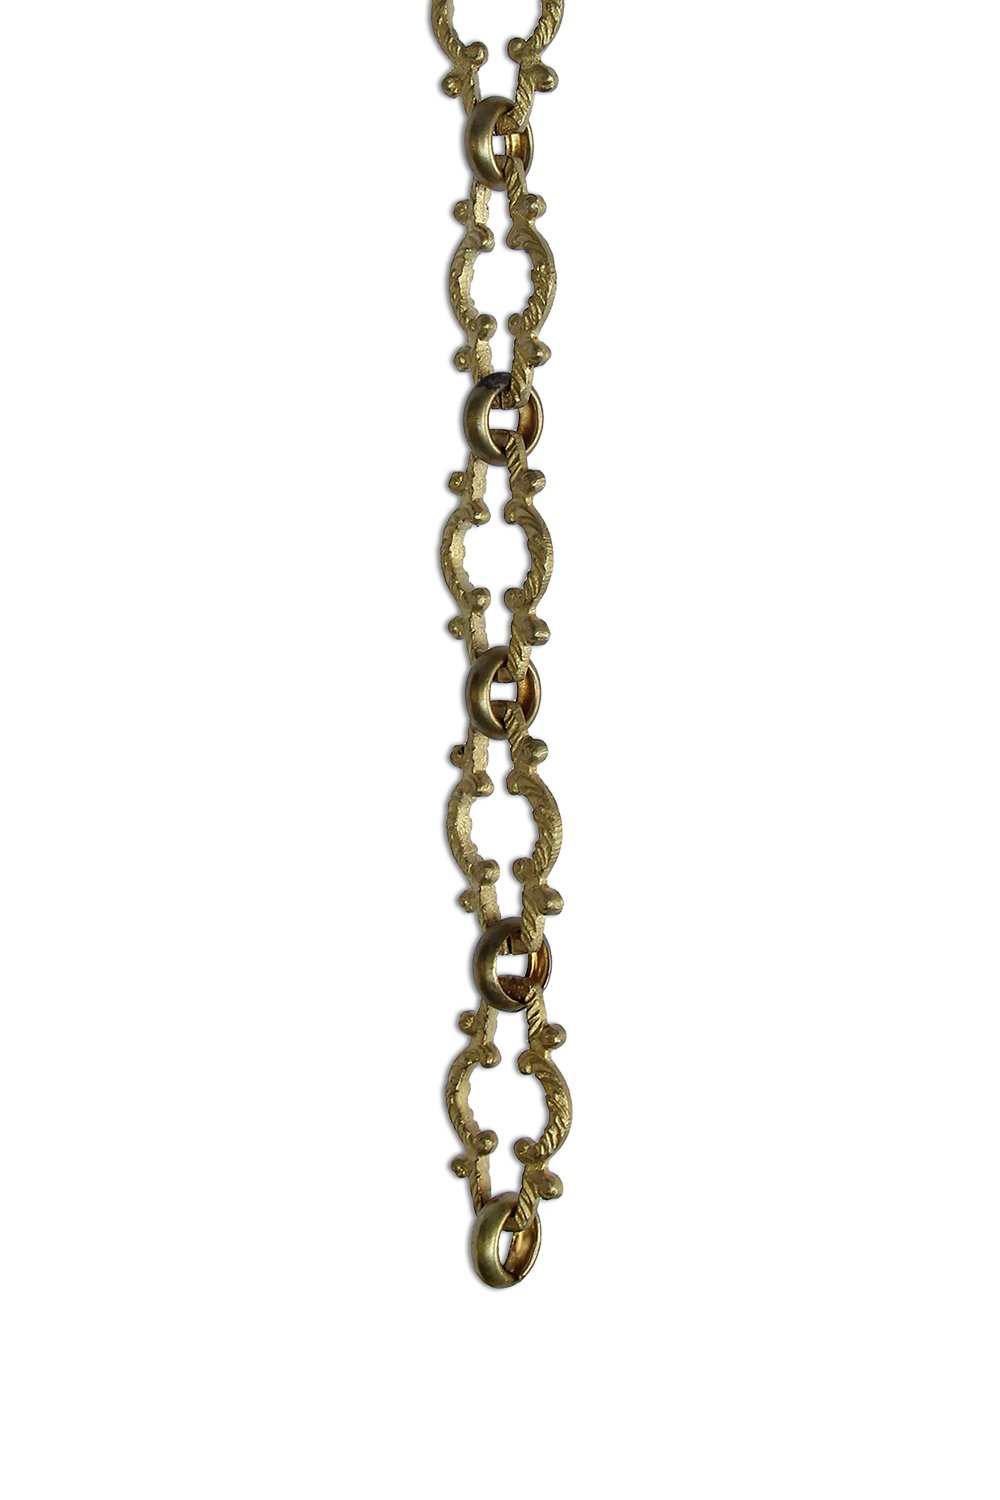 RCH Hardware CH-36-PB Decorative Polished Solid Brass Chain for Hanging, Lighting - Motif Unwelded Links (1 Foot)